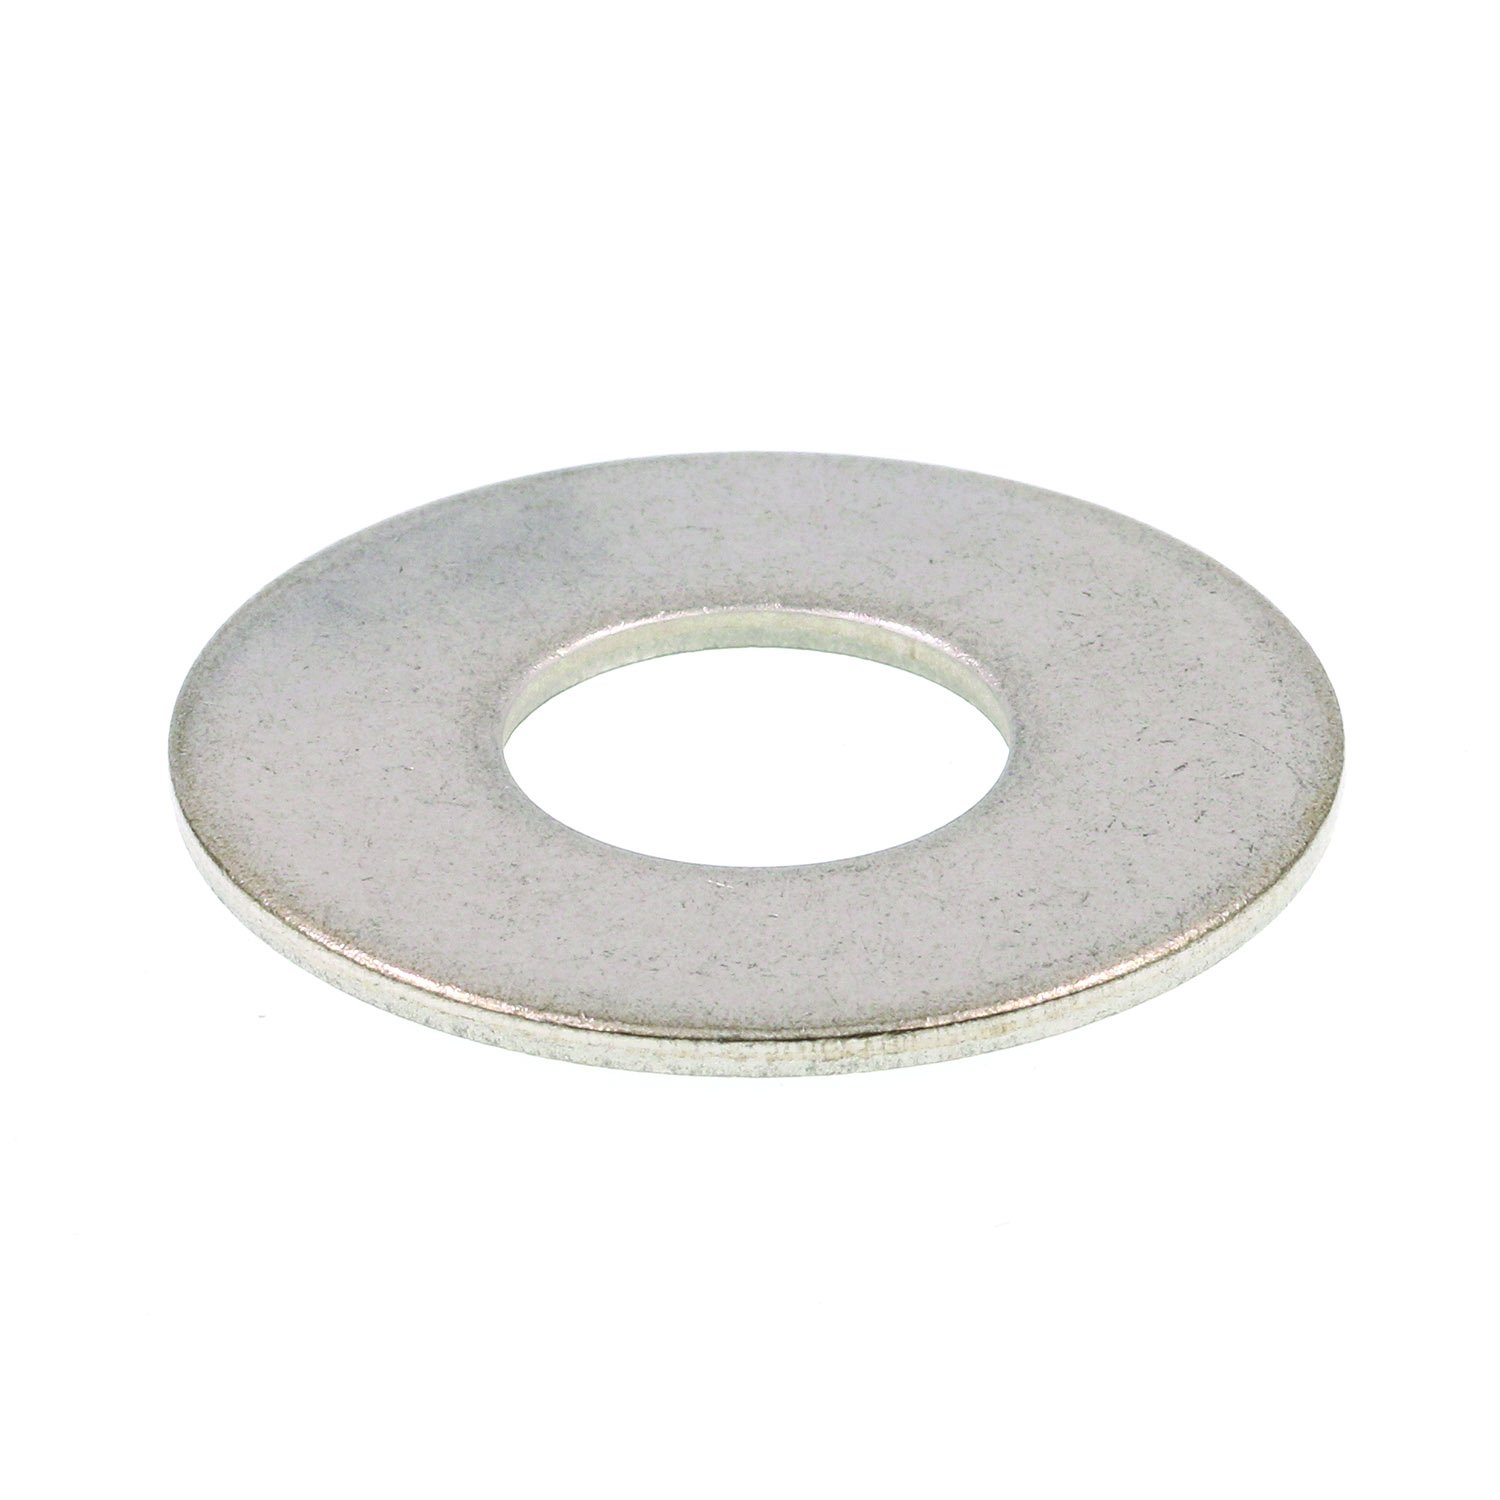 Prime-Line 9080158 Flat Washer, 1/2 in, Grade 18-8 Stainless Steel, Pack of 10